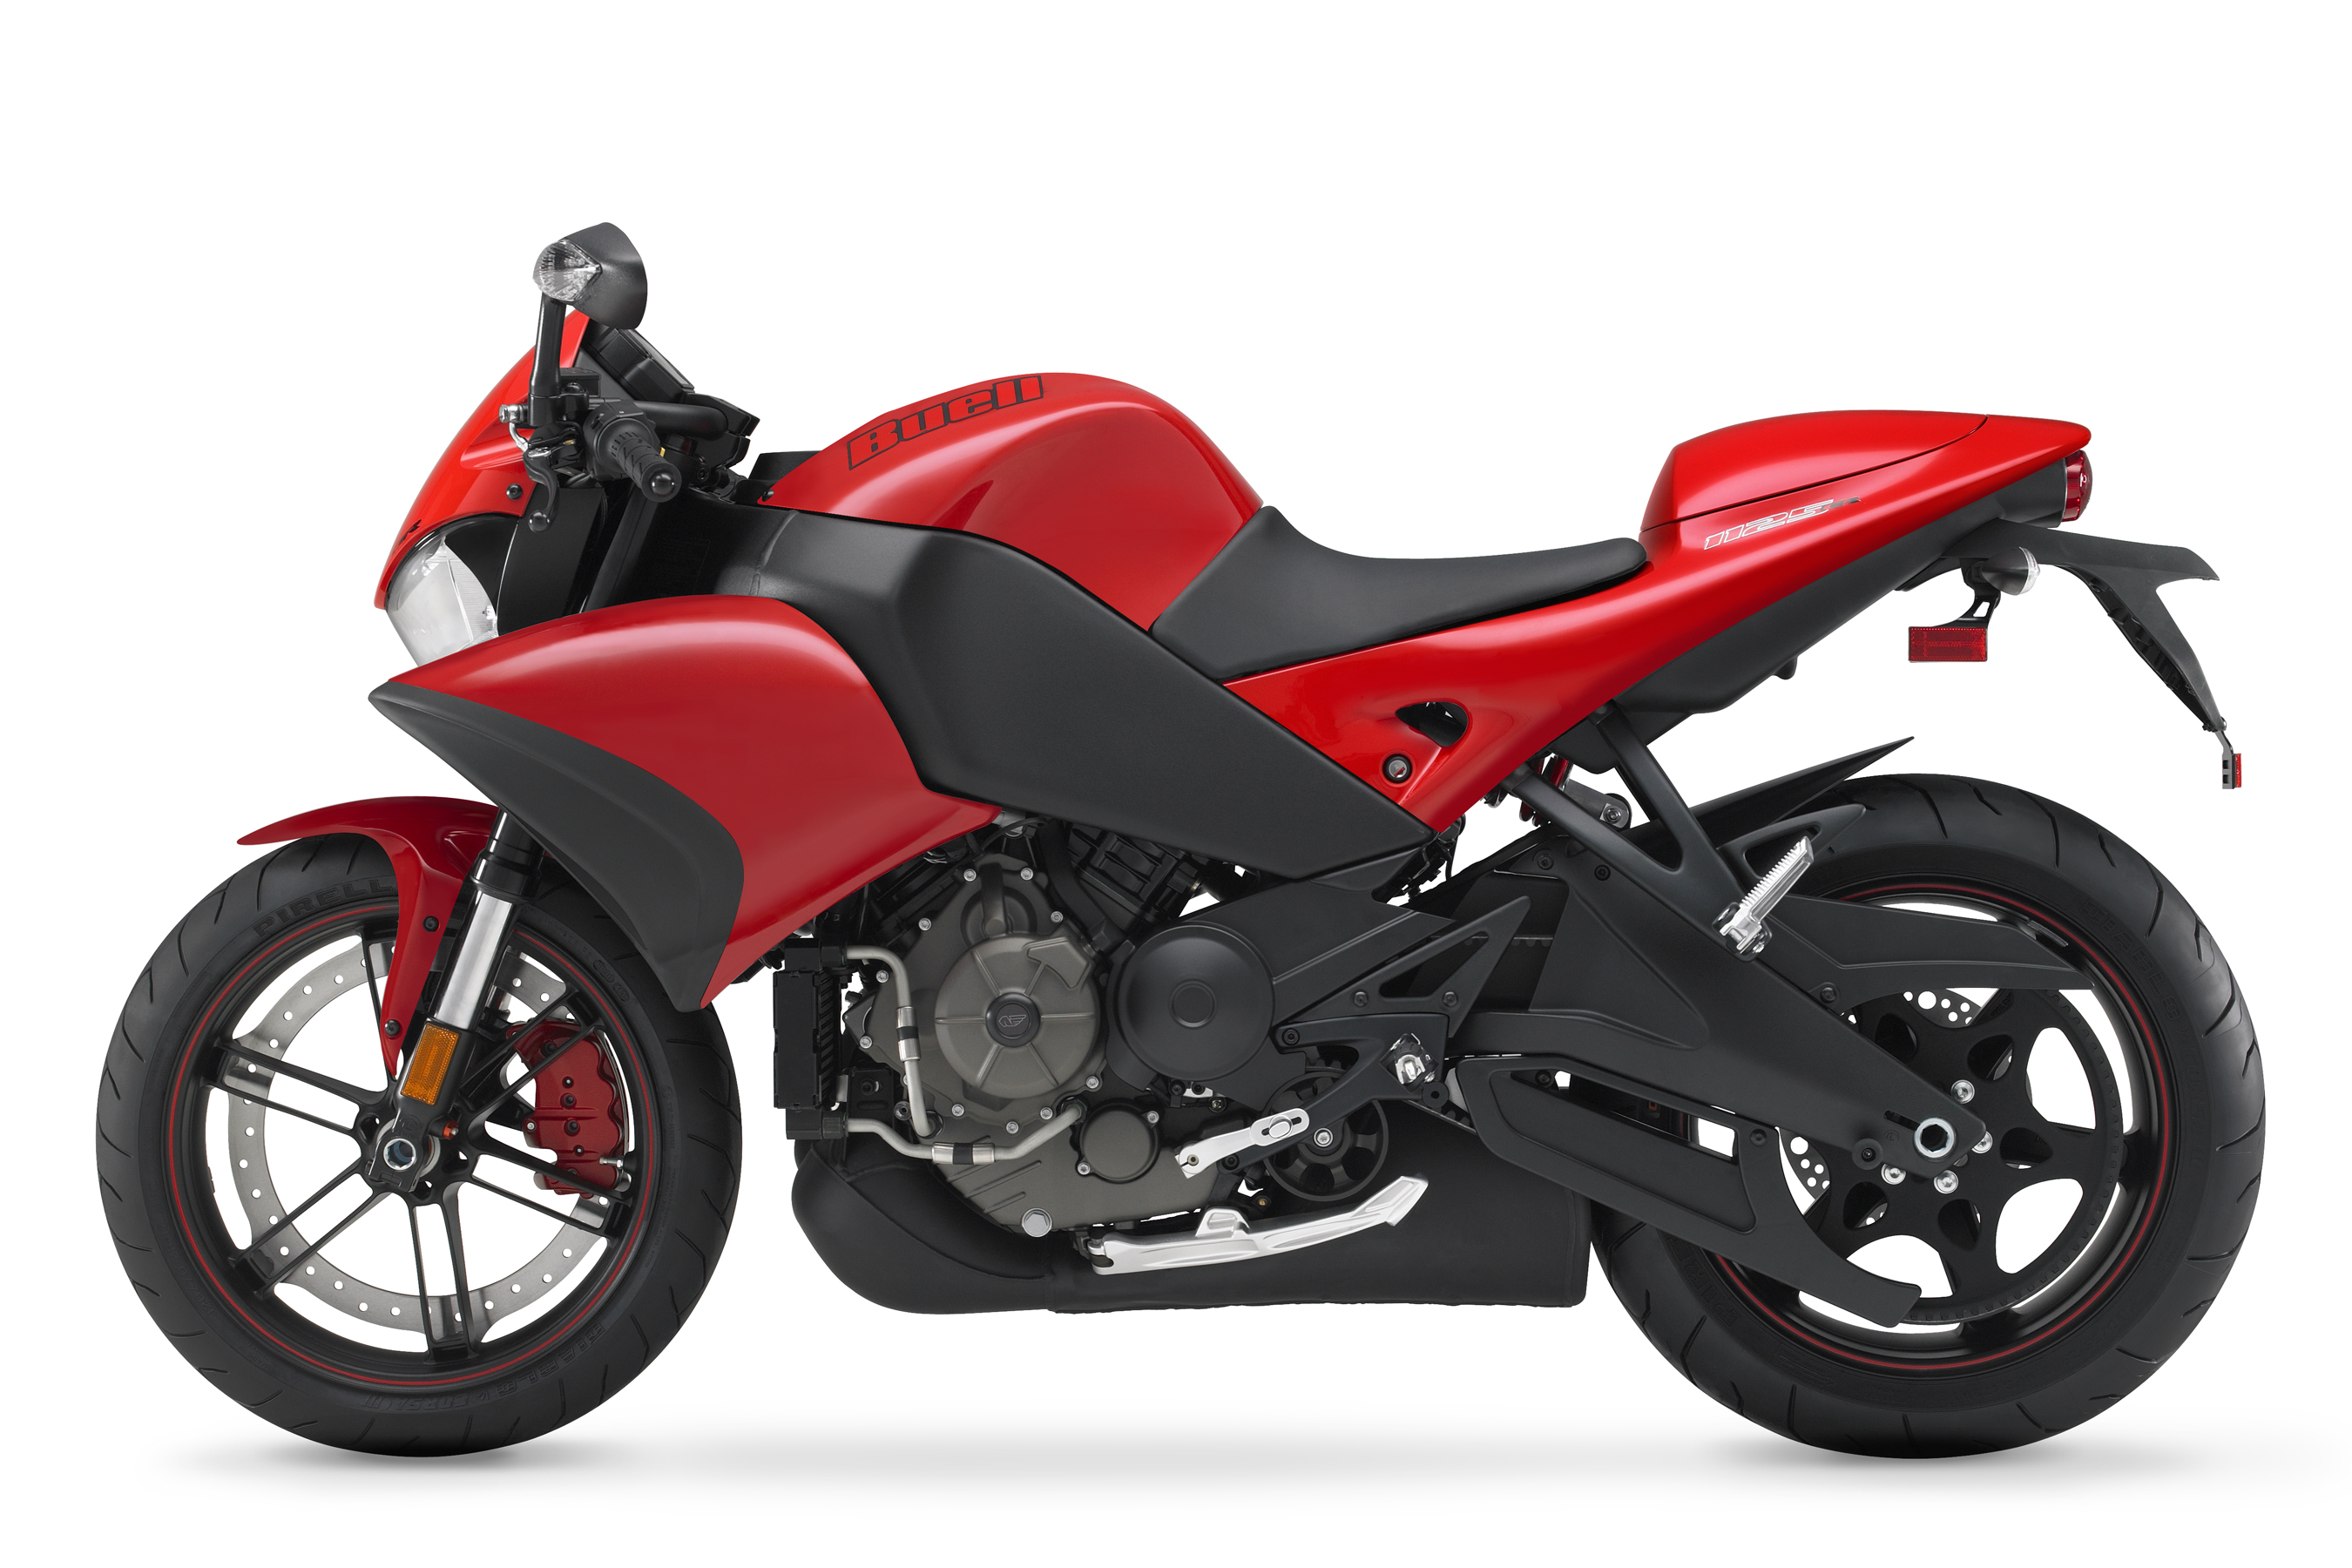 2009 Buell 1125CR | Top Speed. »